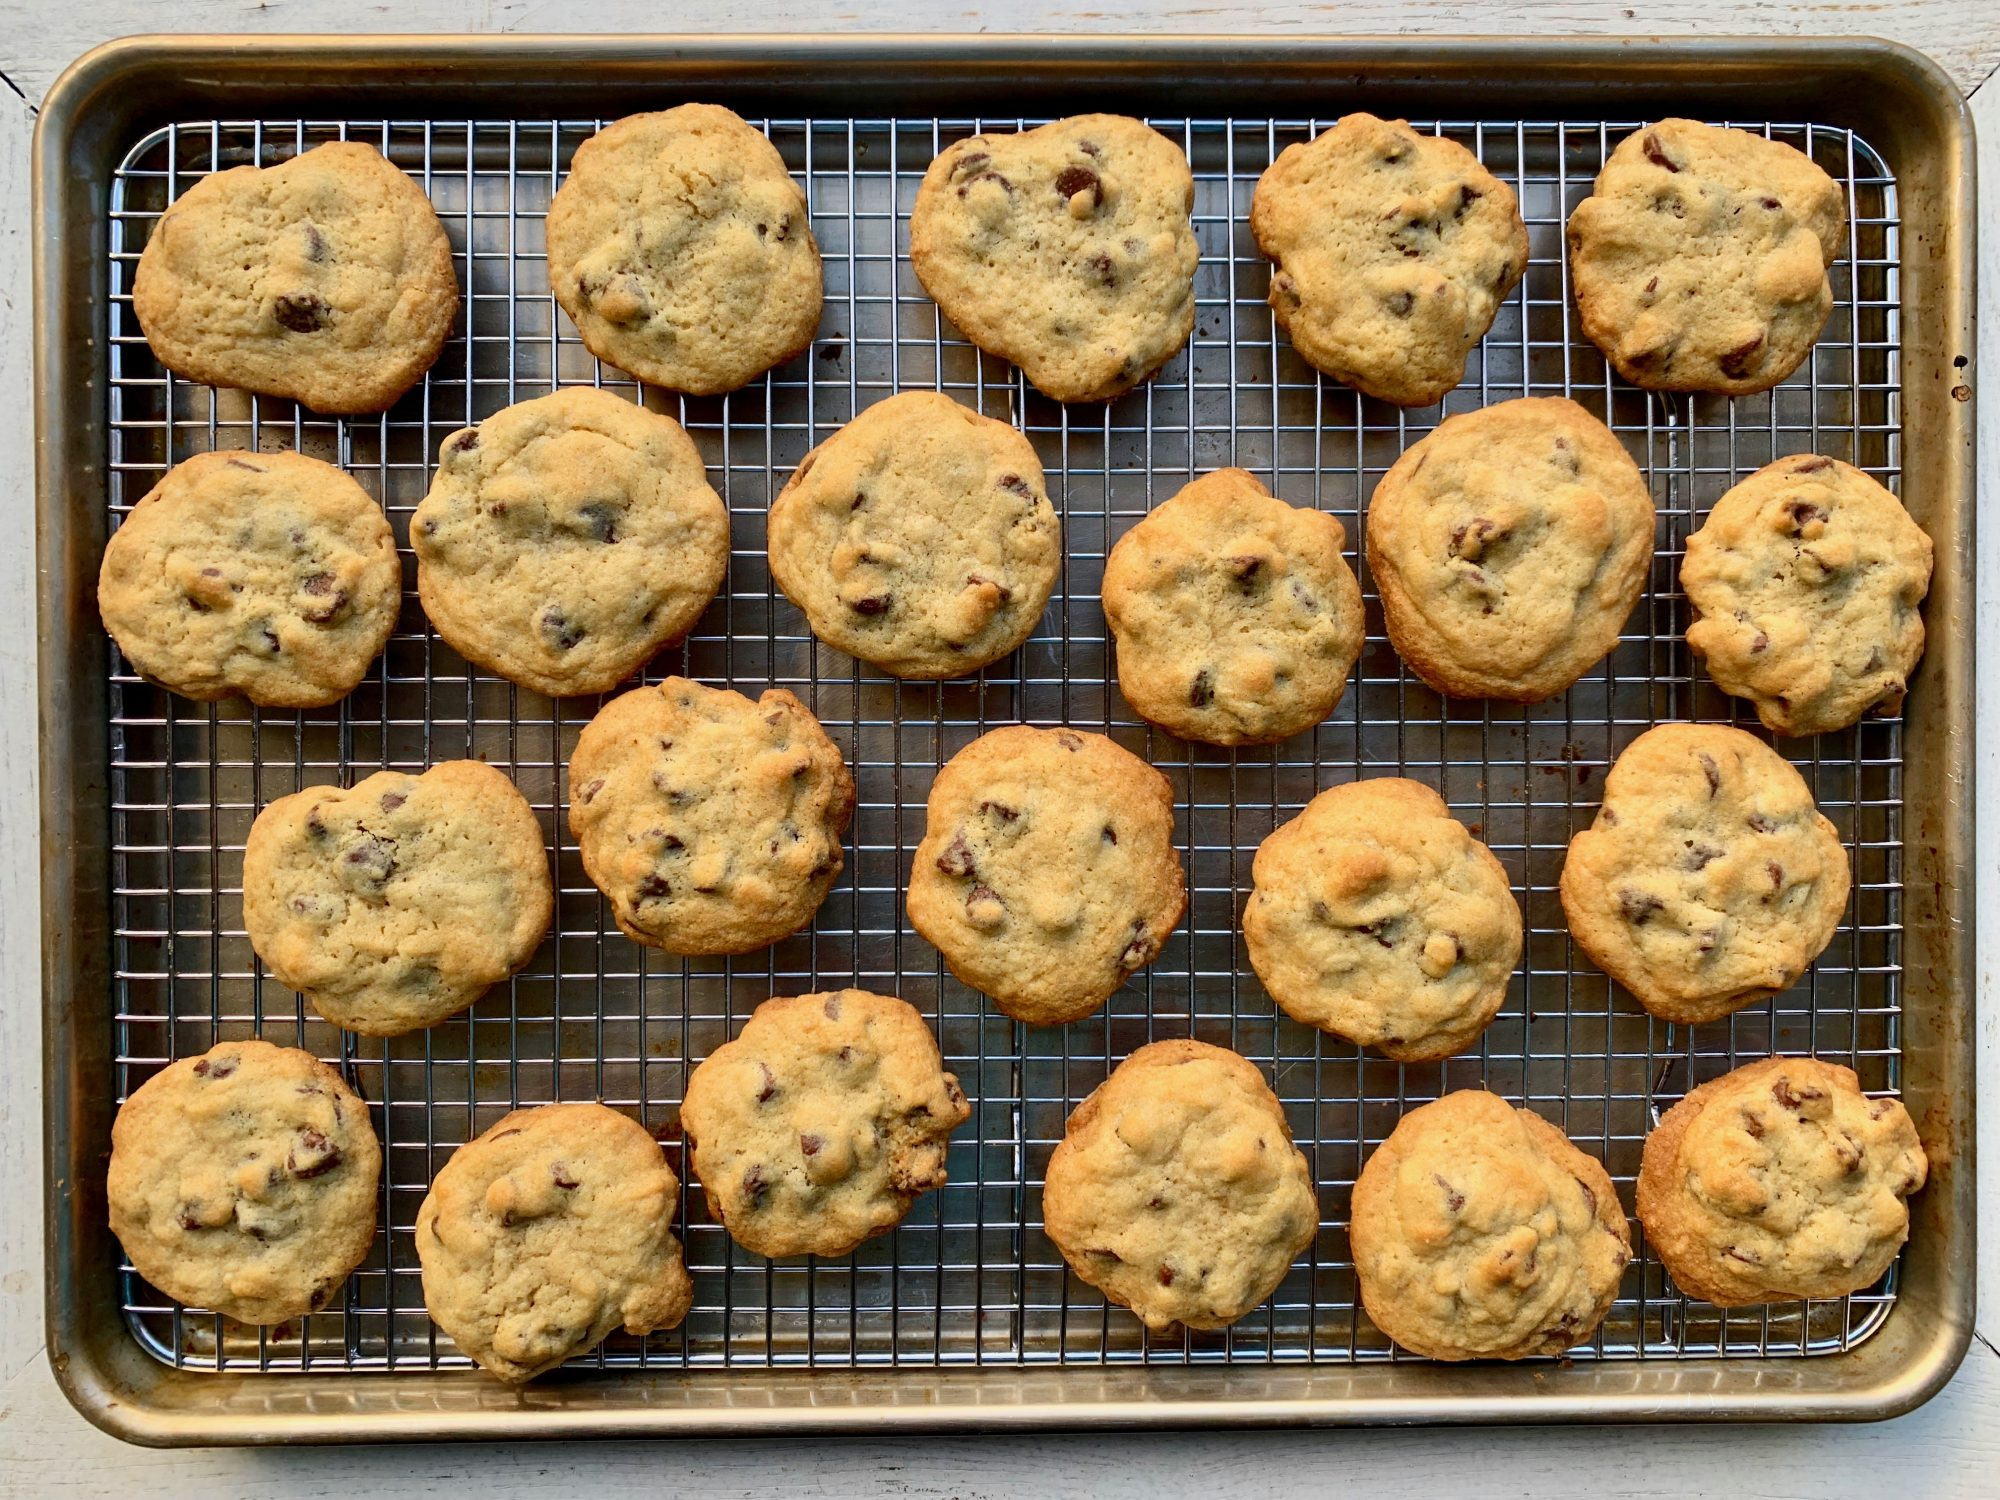 Barbara Bush: Her Famous Chocolate Chip Cookies